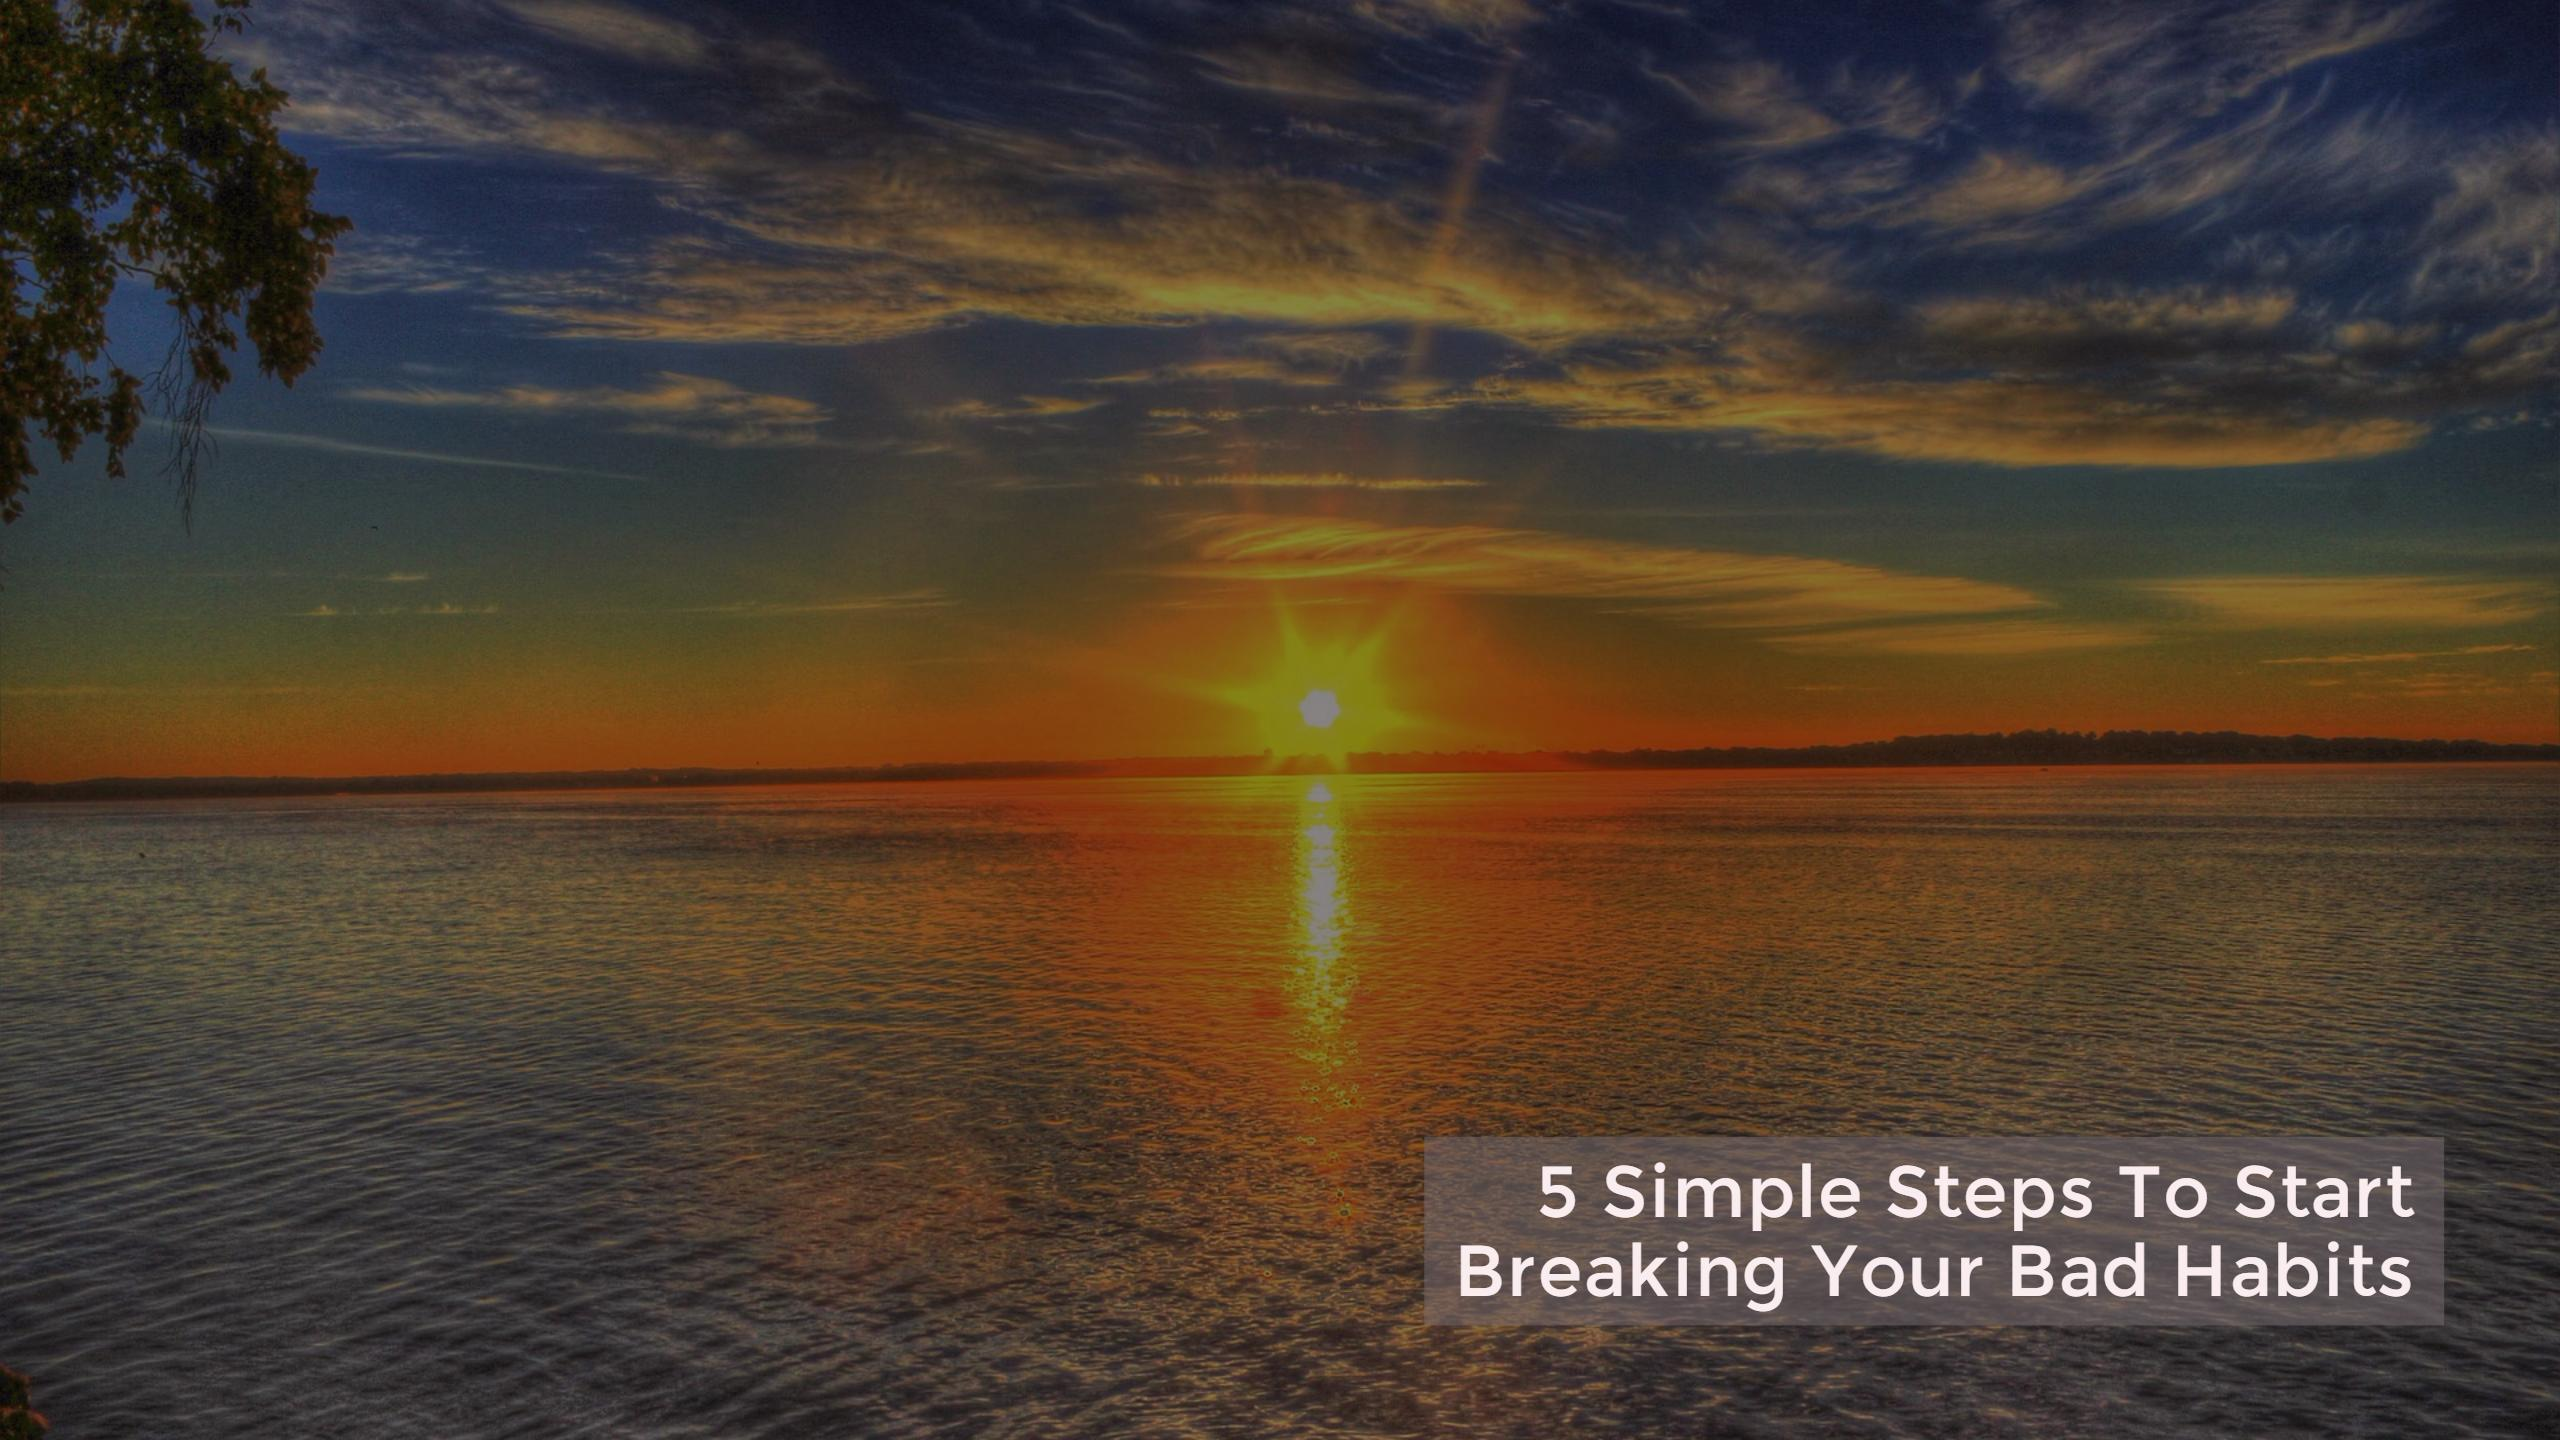 5 Simple Steps To Start Breaking Your Bad Habits